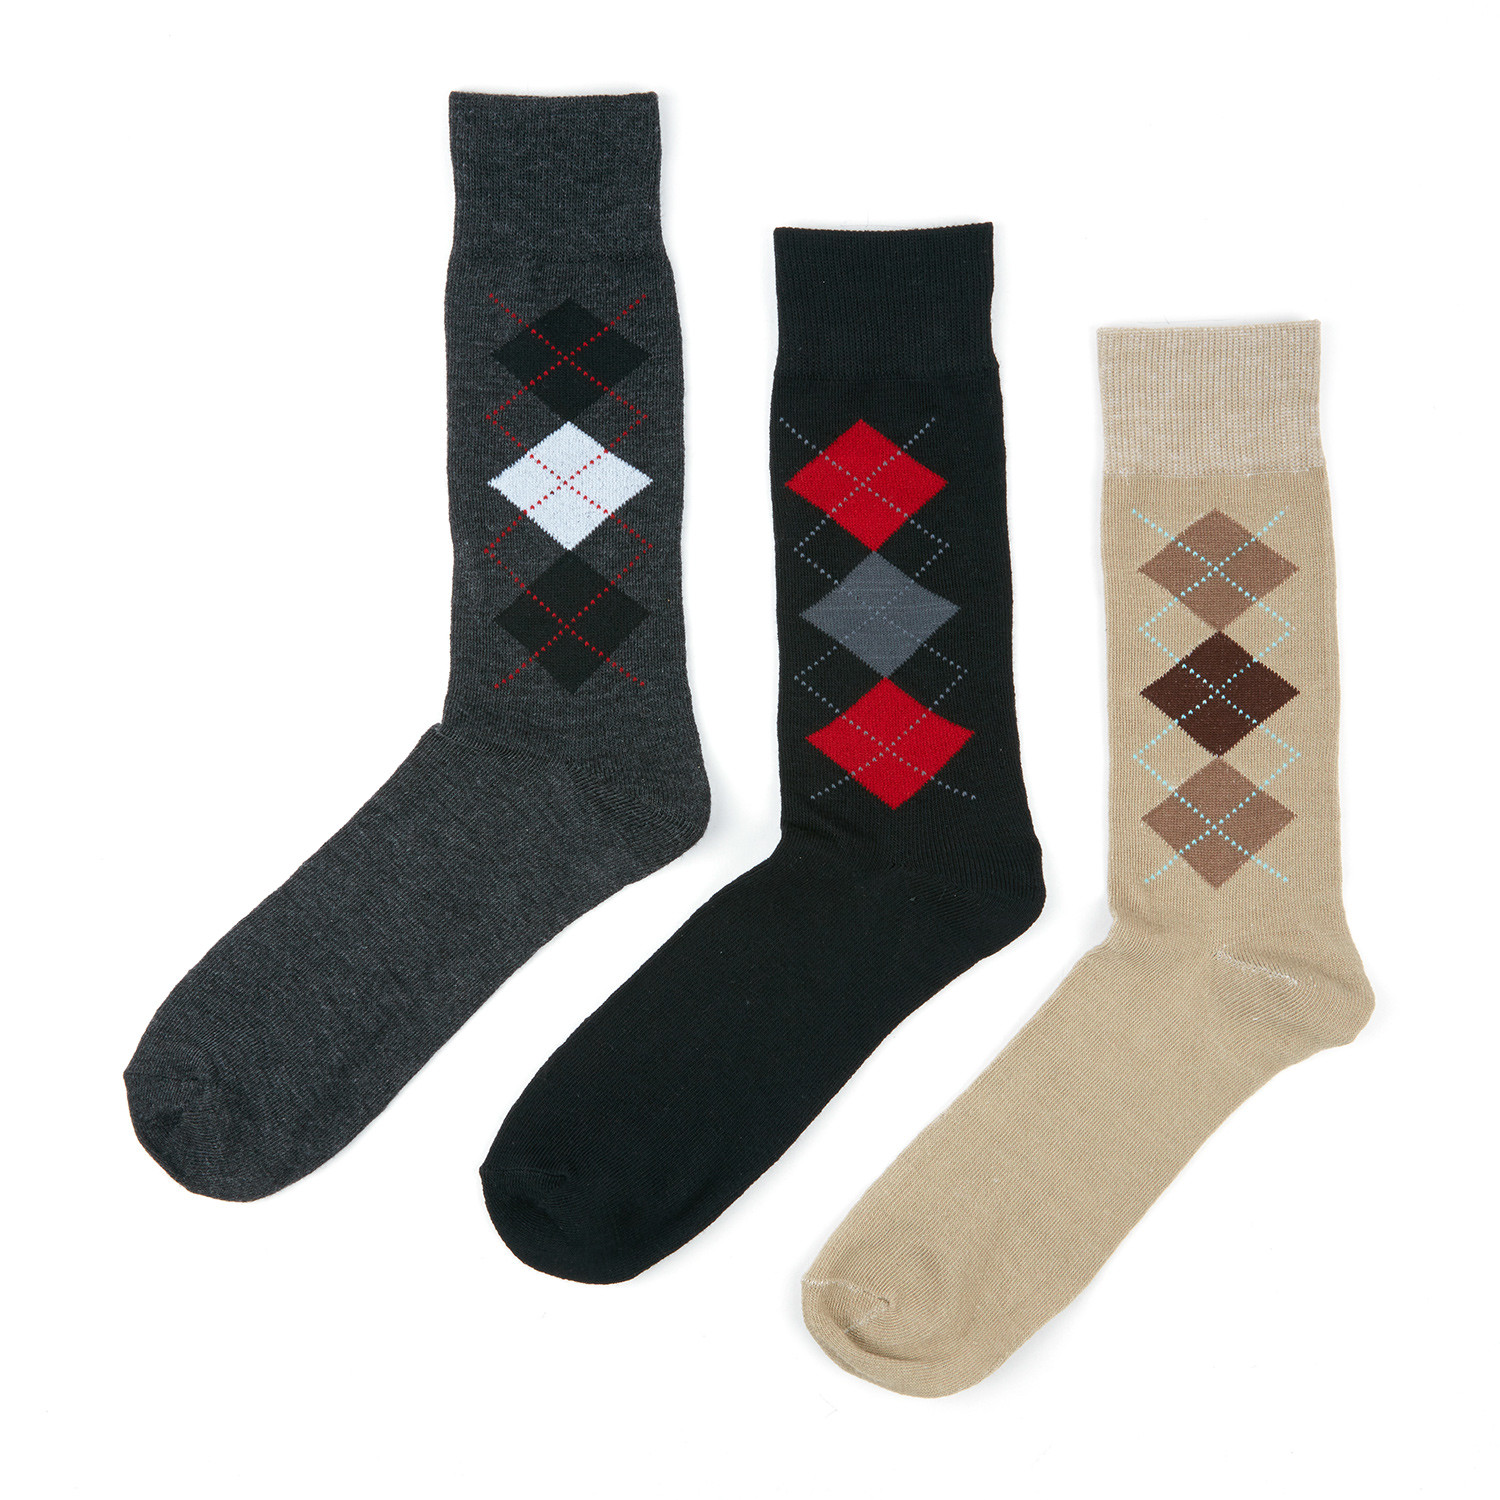 Argyle dress socks pack of 3 socks with style touch of modern